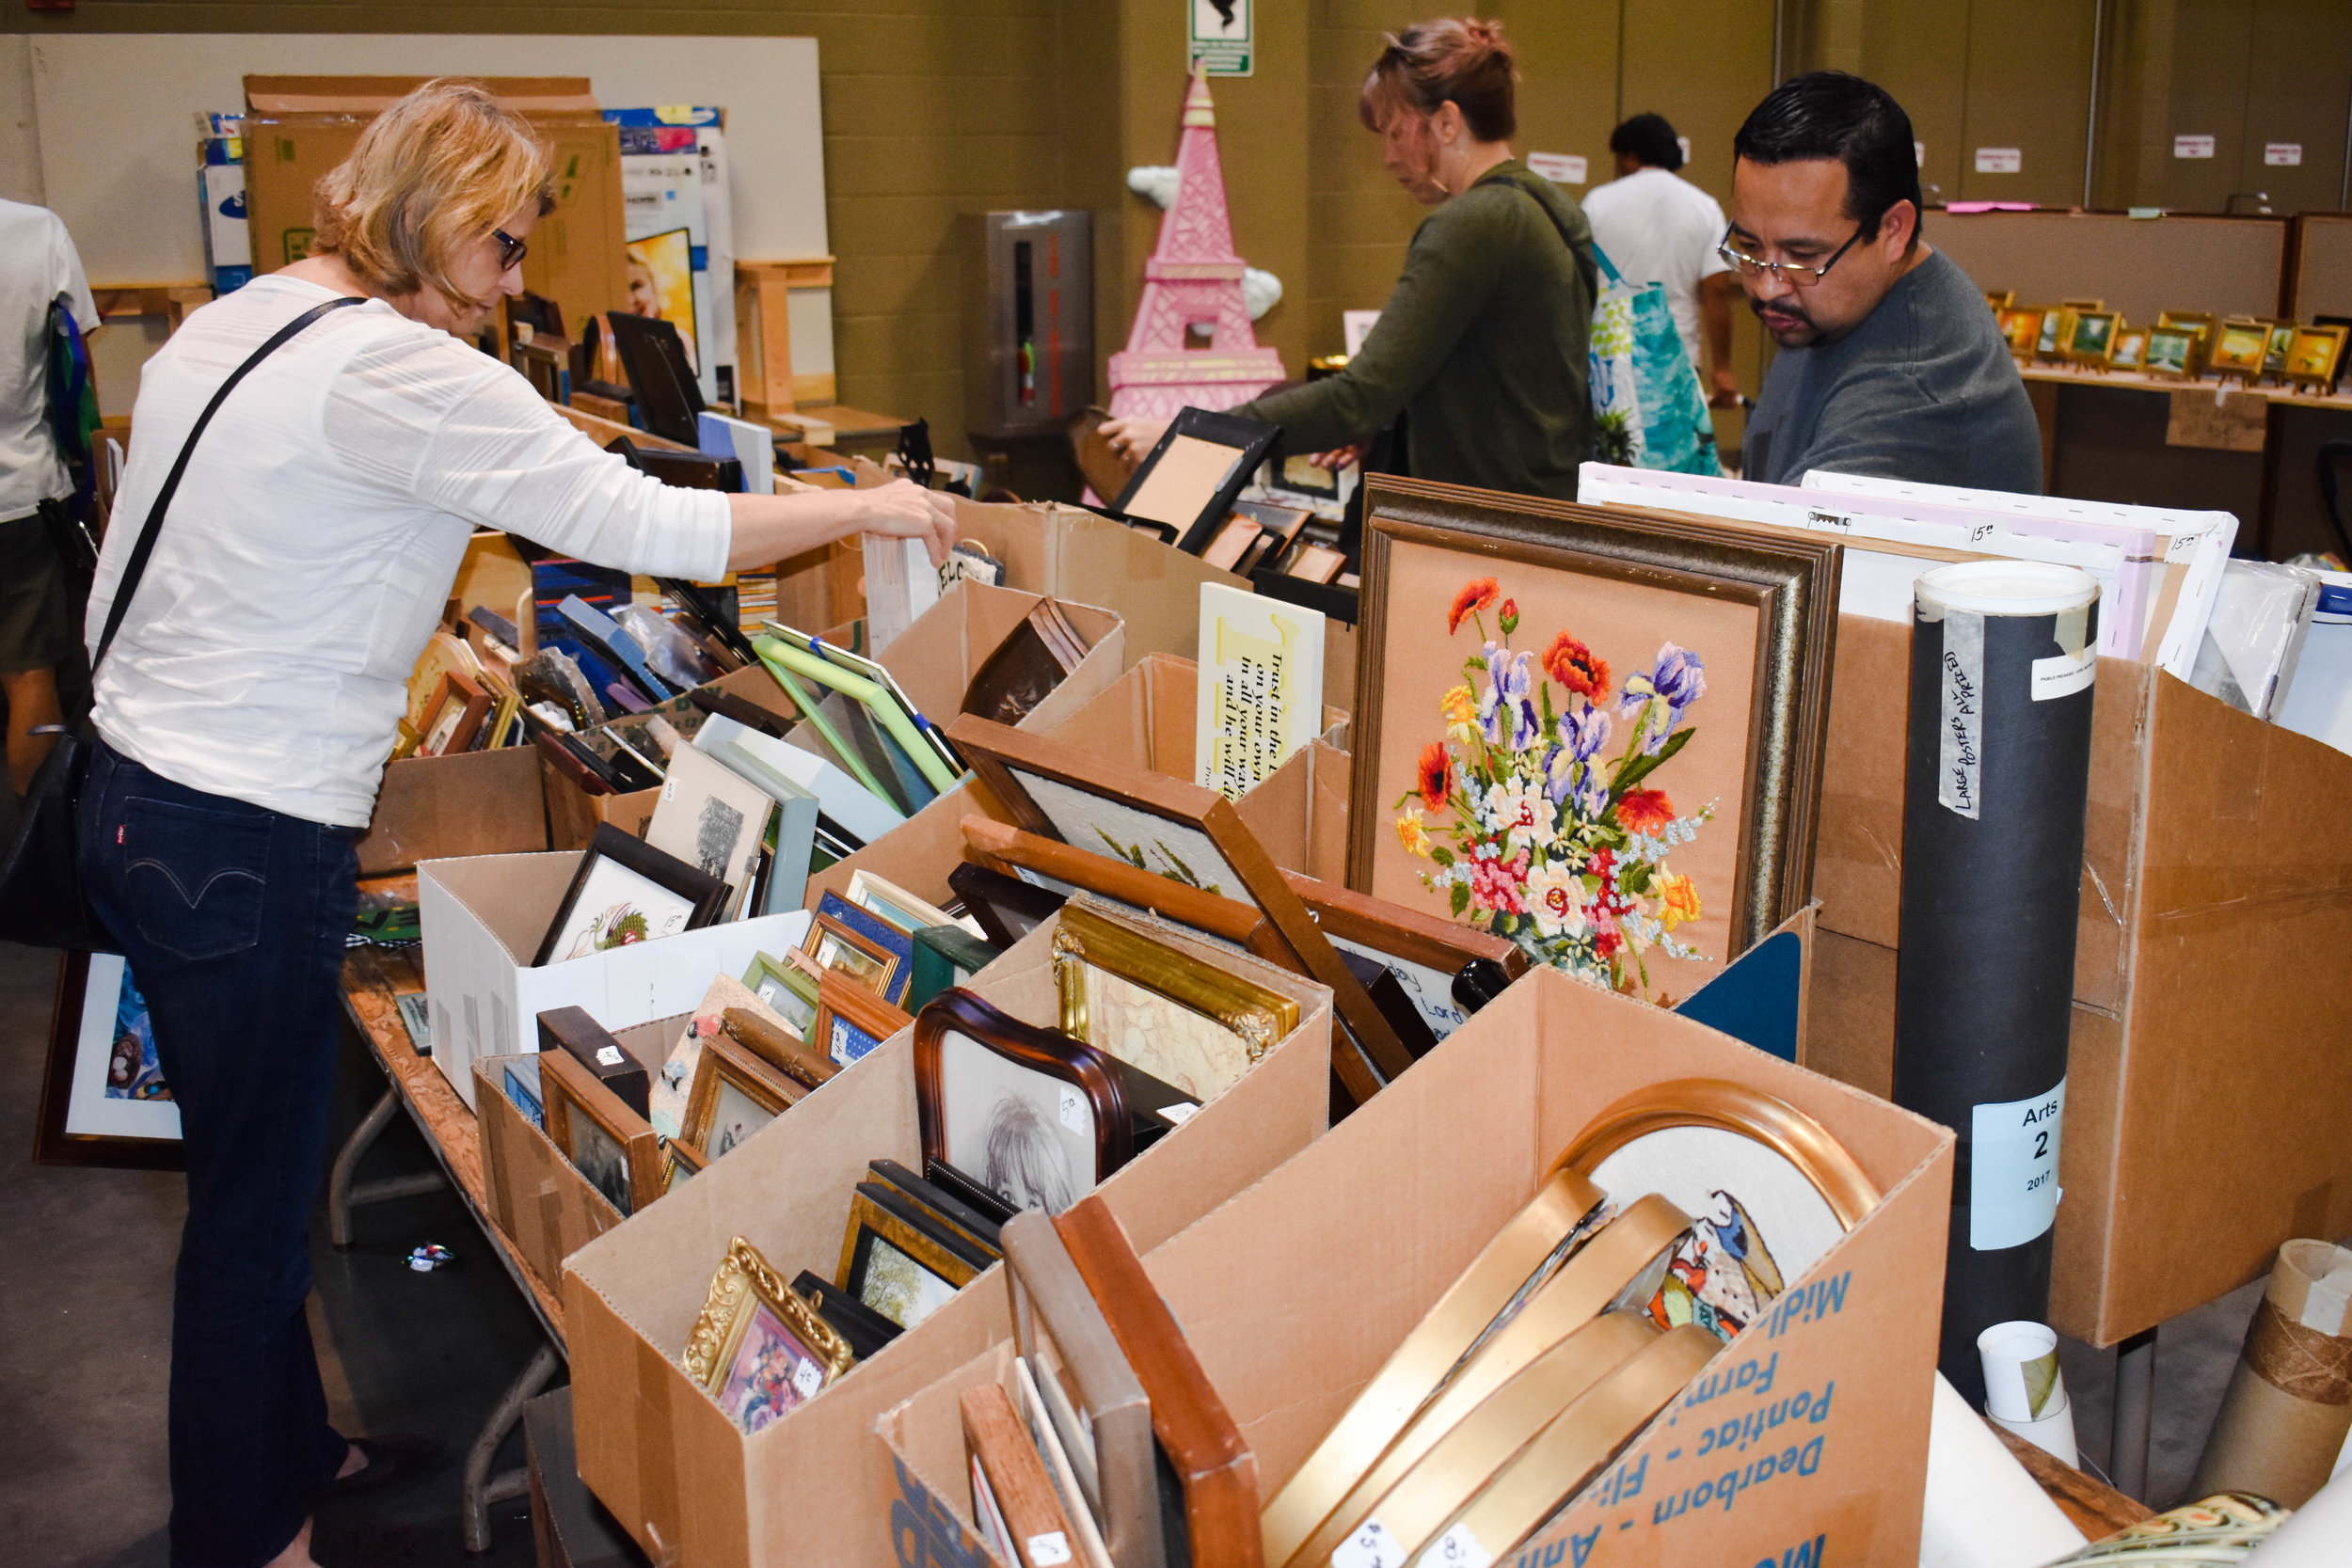 Sale attendees peruse through boxes of antique art collectibles.